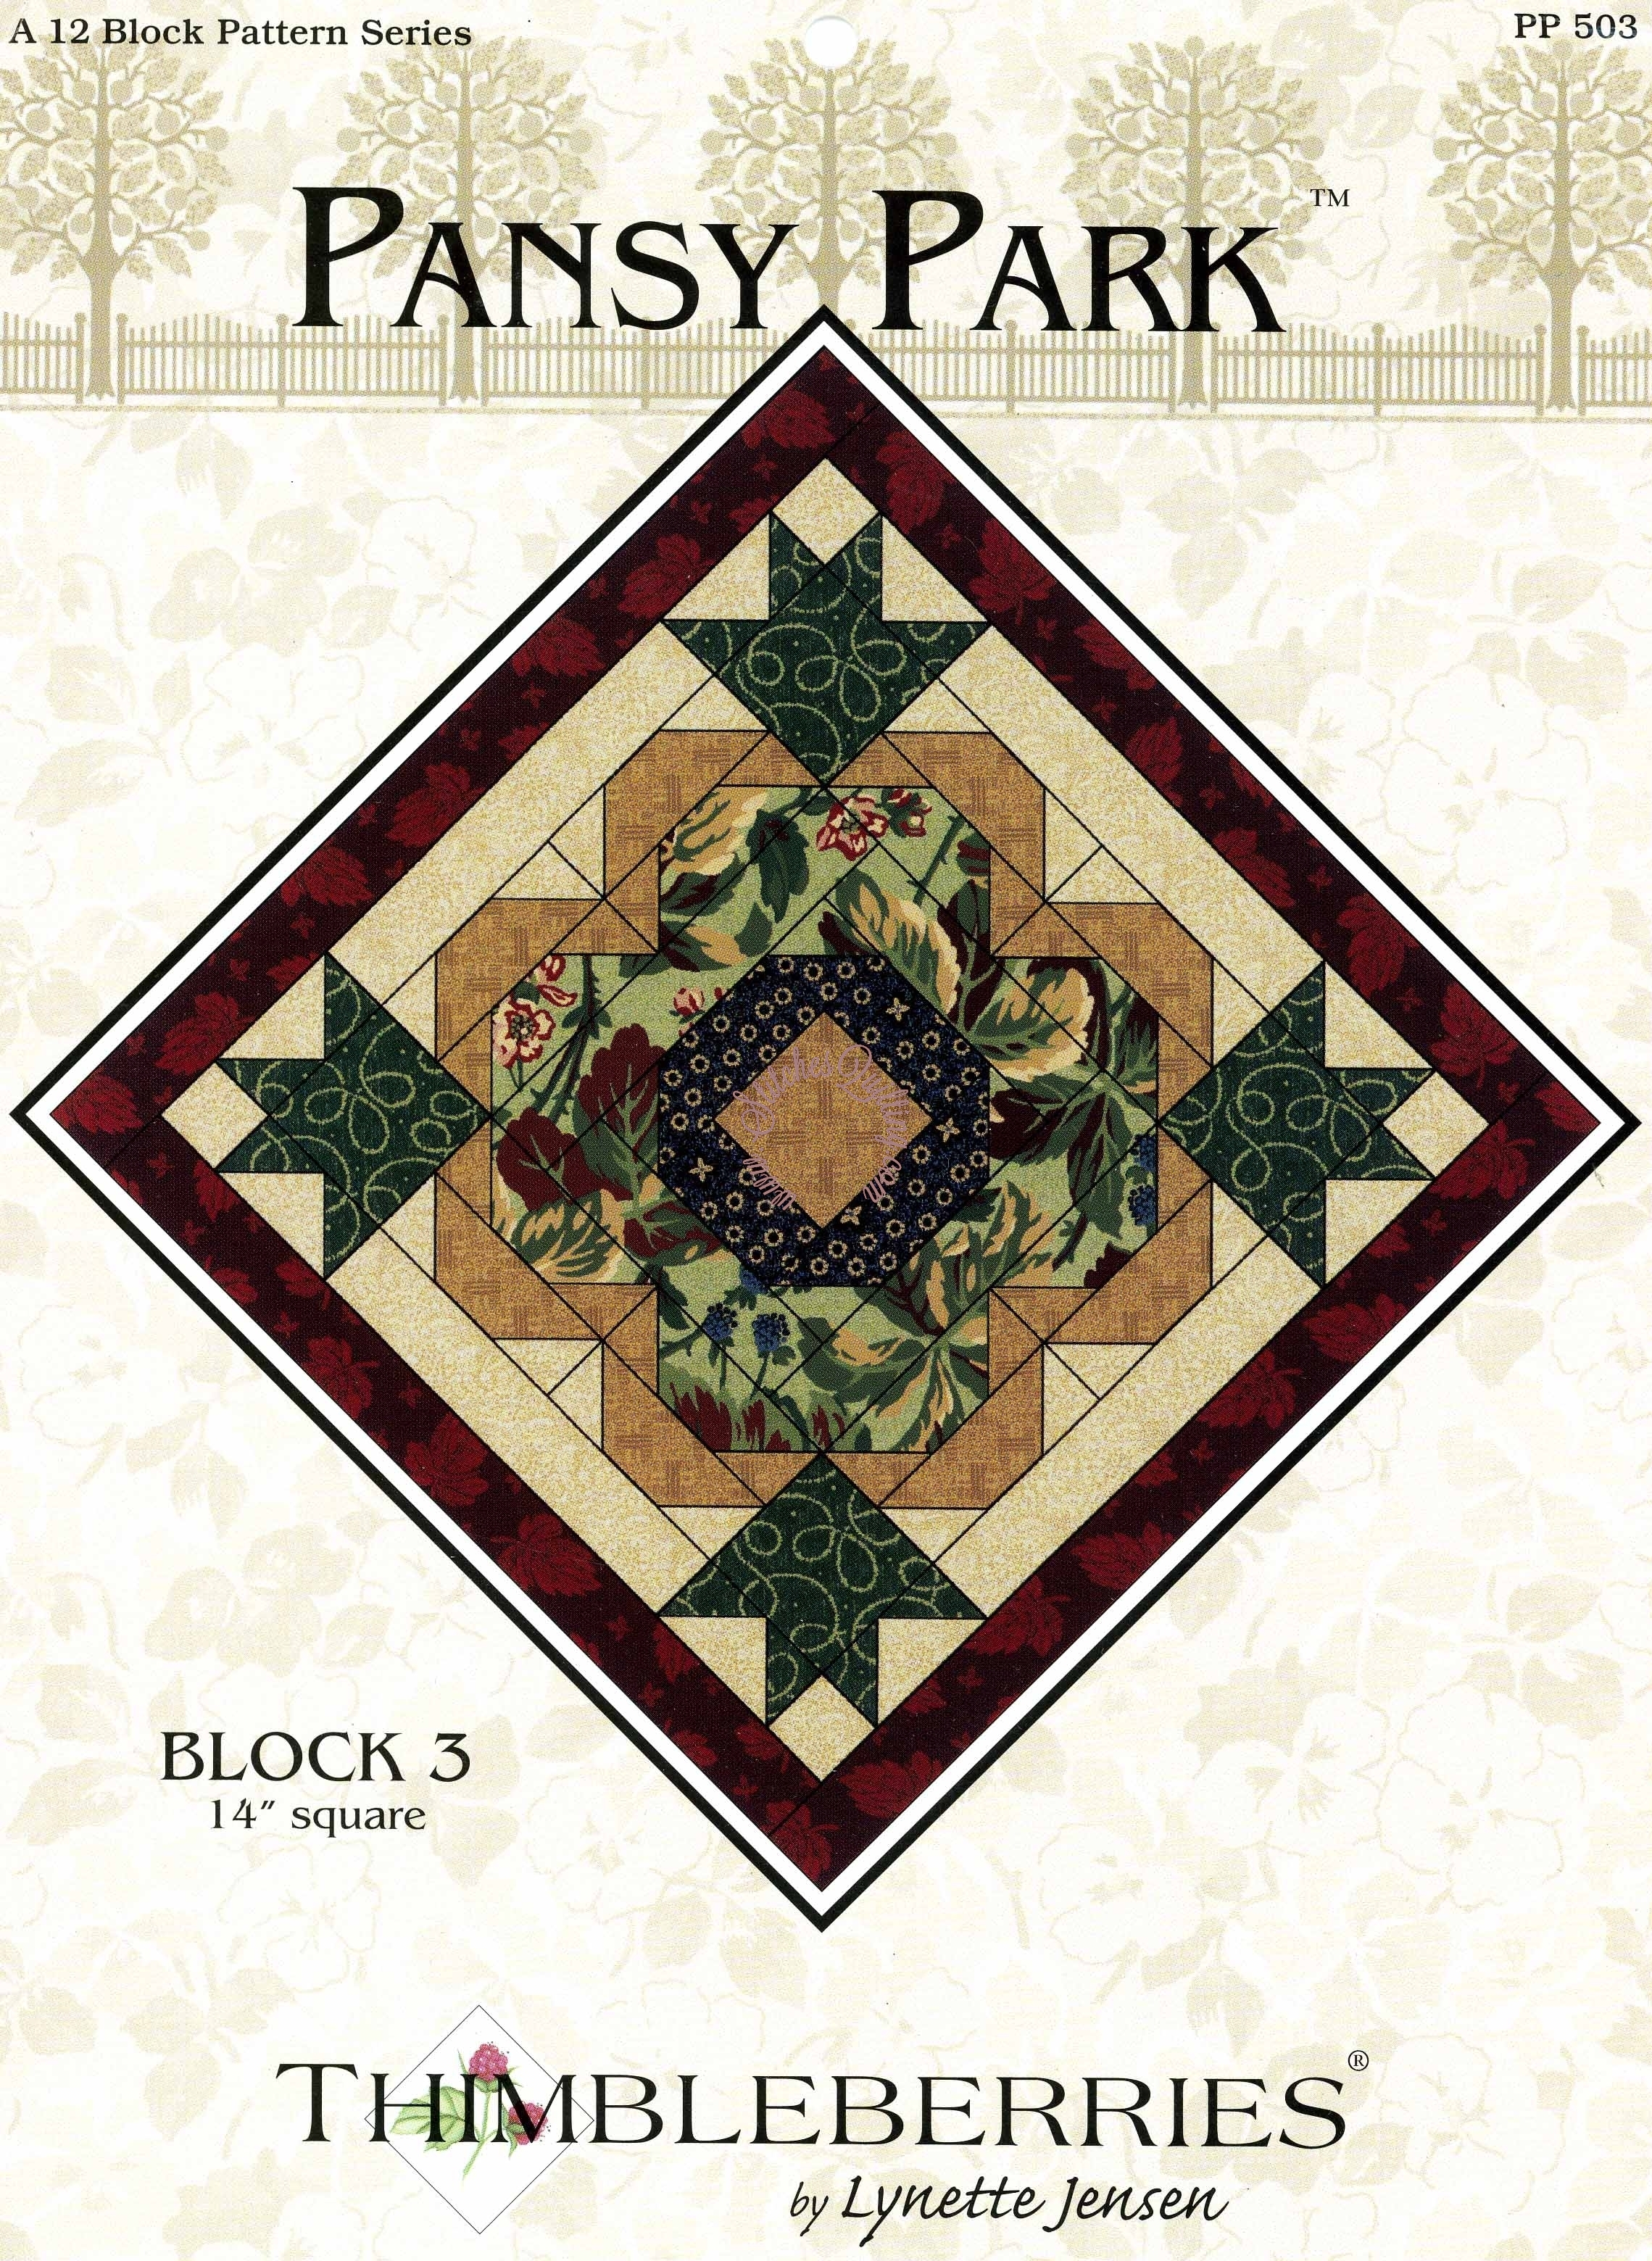 Thimbleberries Pansy Park Pattern Block 3 Stitches Quilting